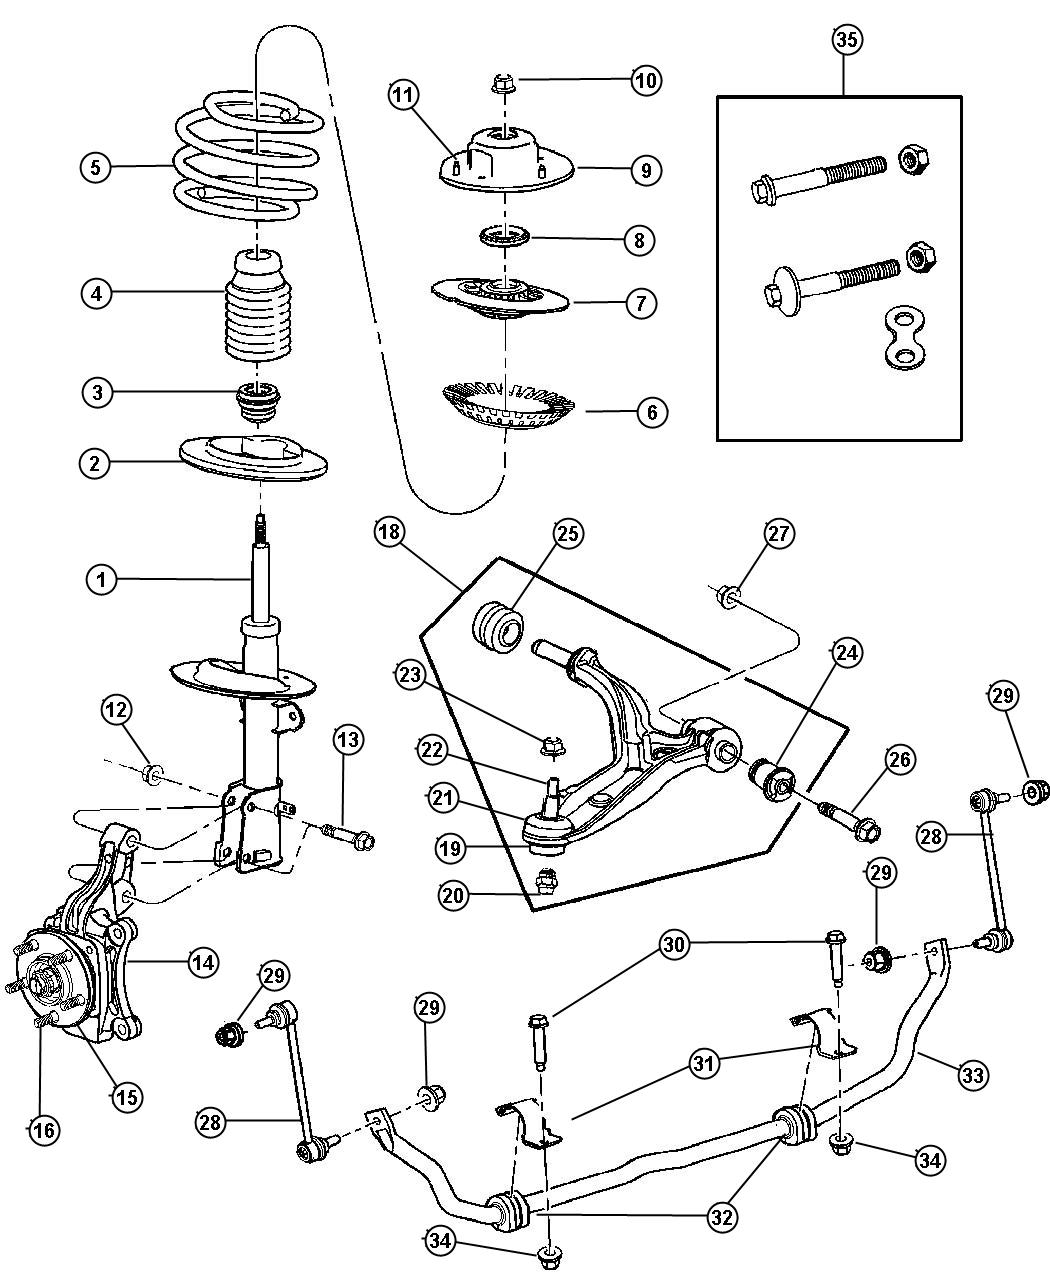 Dodge Neon Wiring Diagram Download Diagrams Dodge Auto